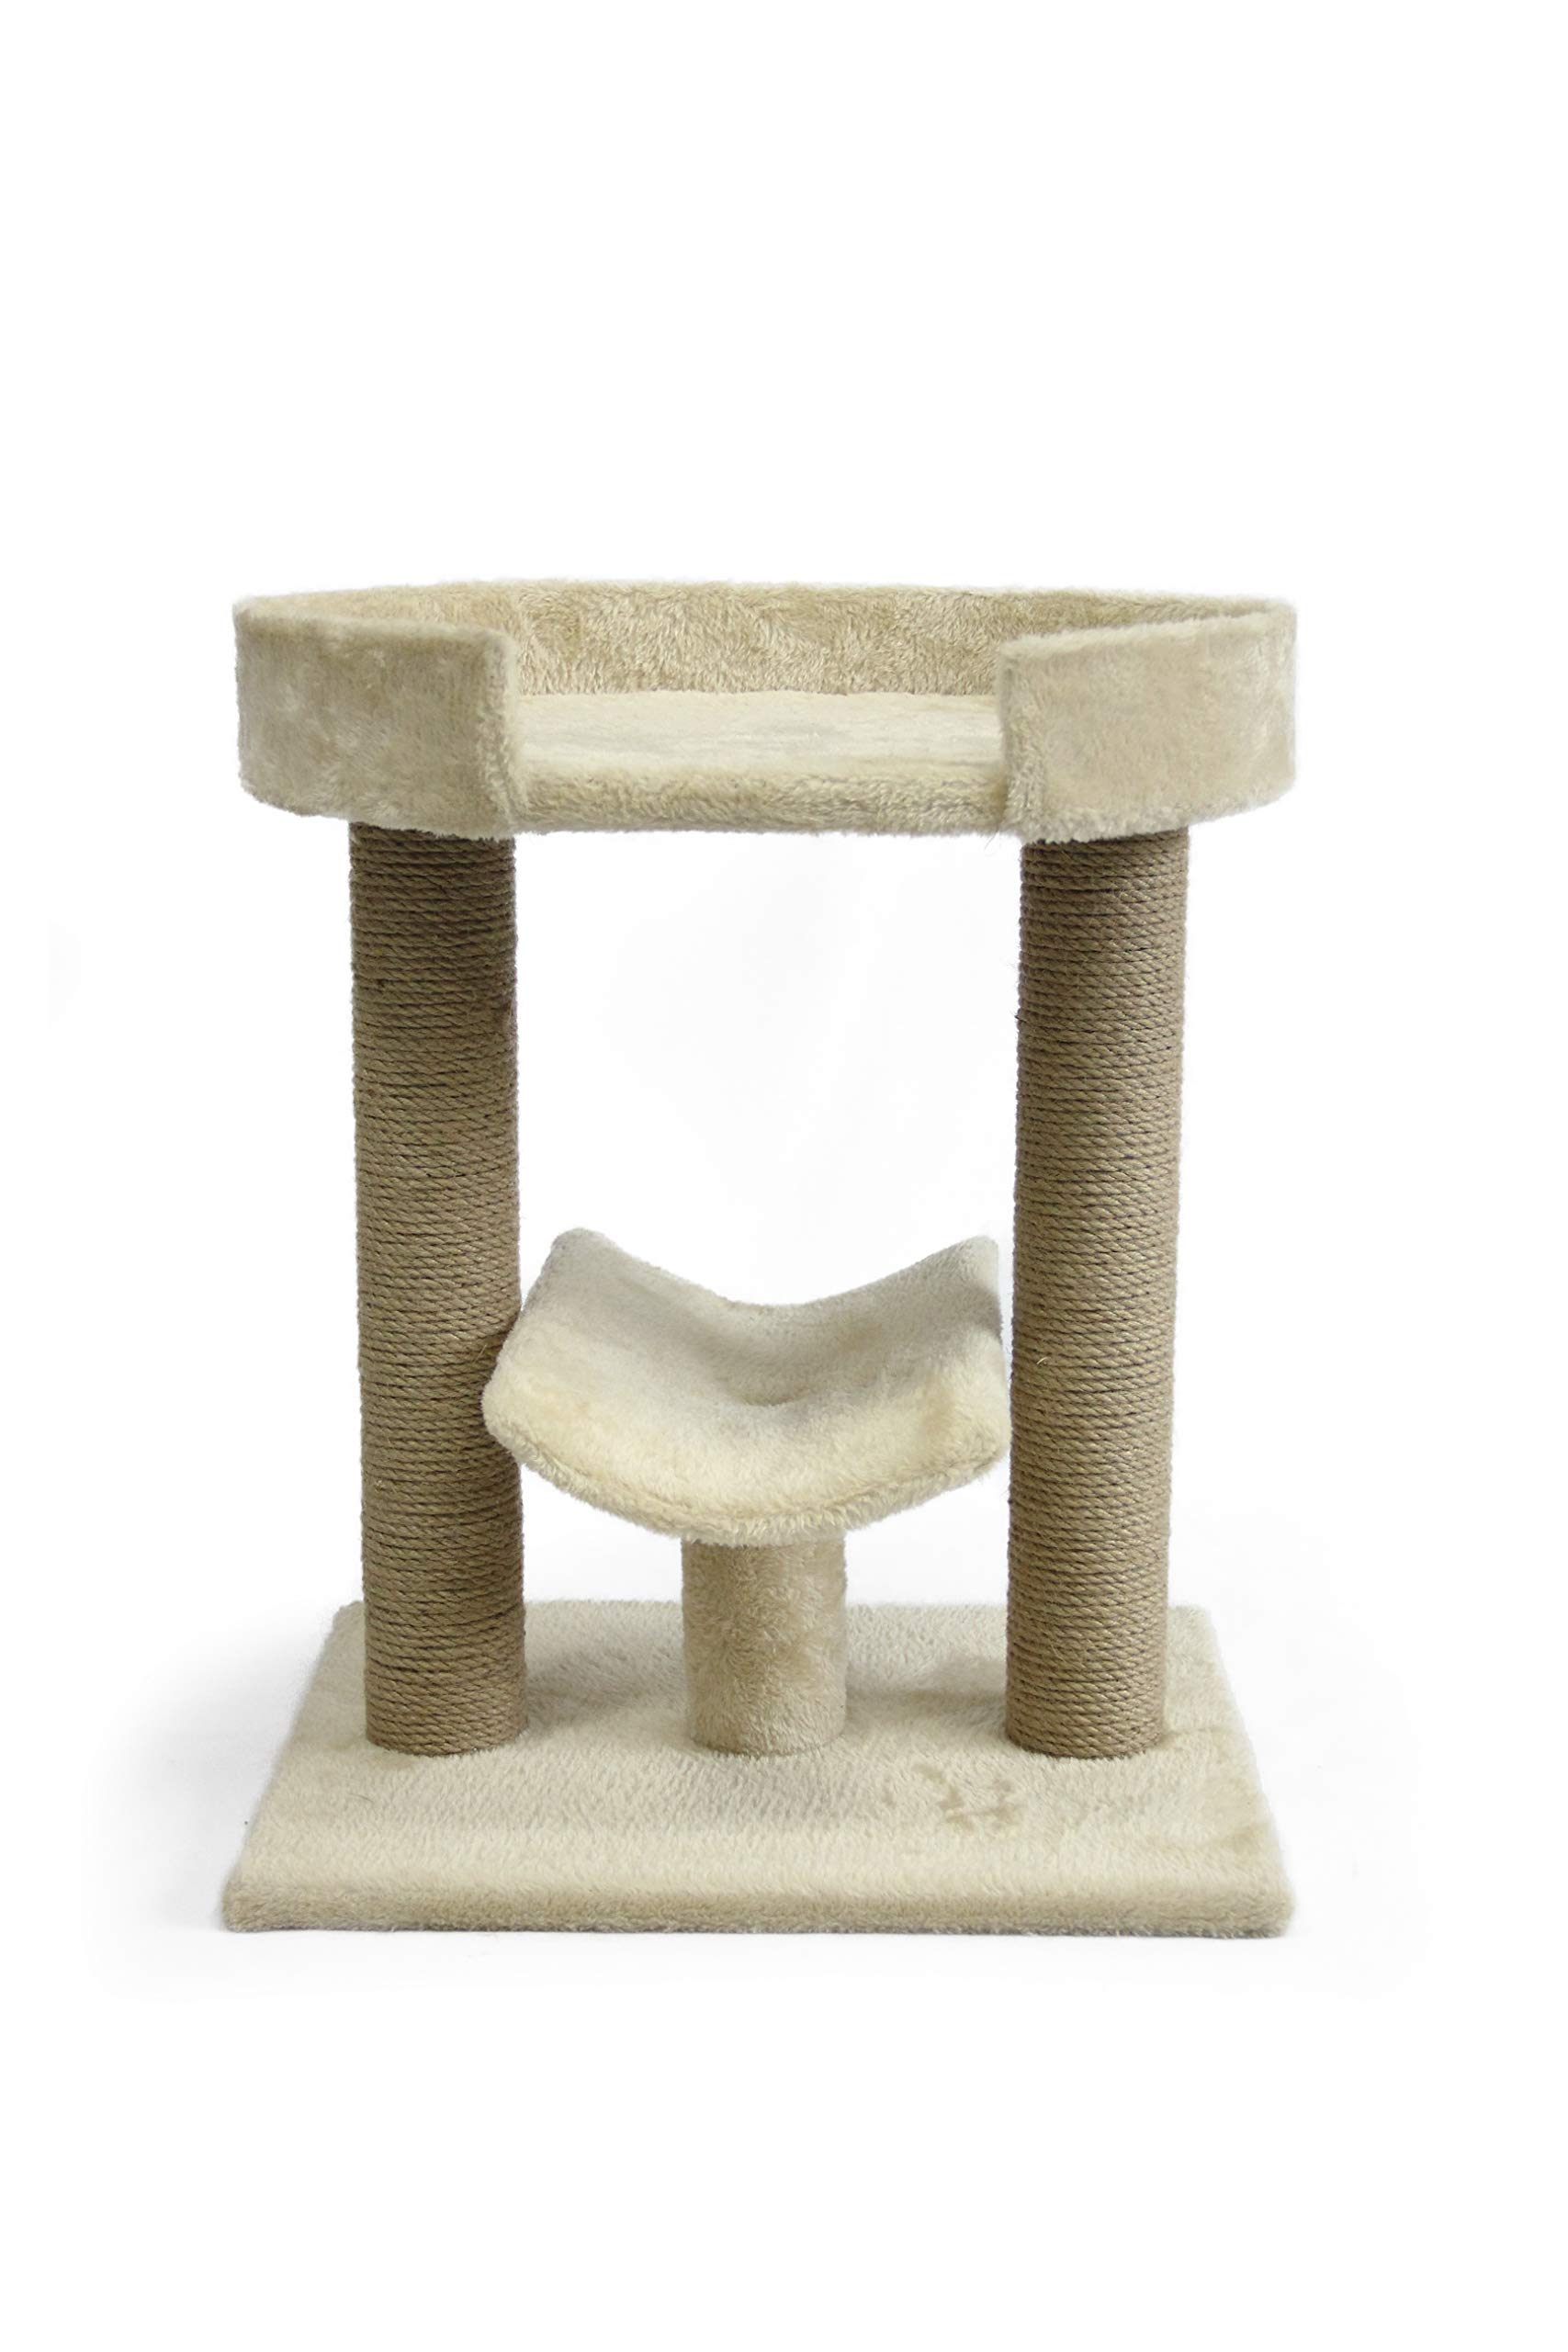 AmazonBasics Top Platform Cat Tree - 18 x 14 x 22 Inches, Beige by AmazonBasics